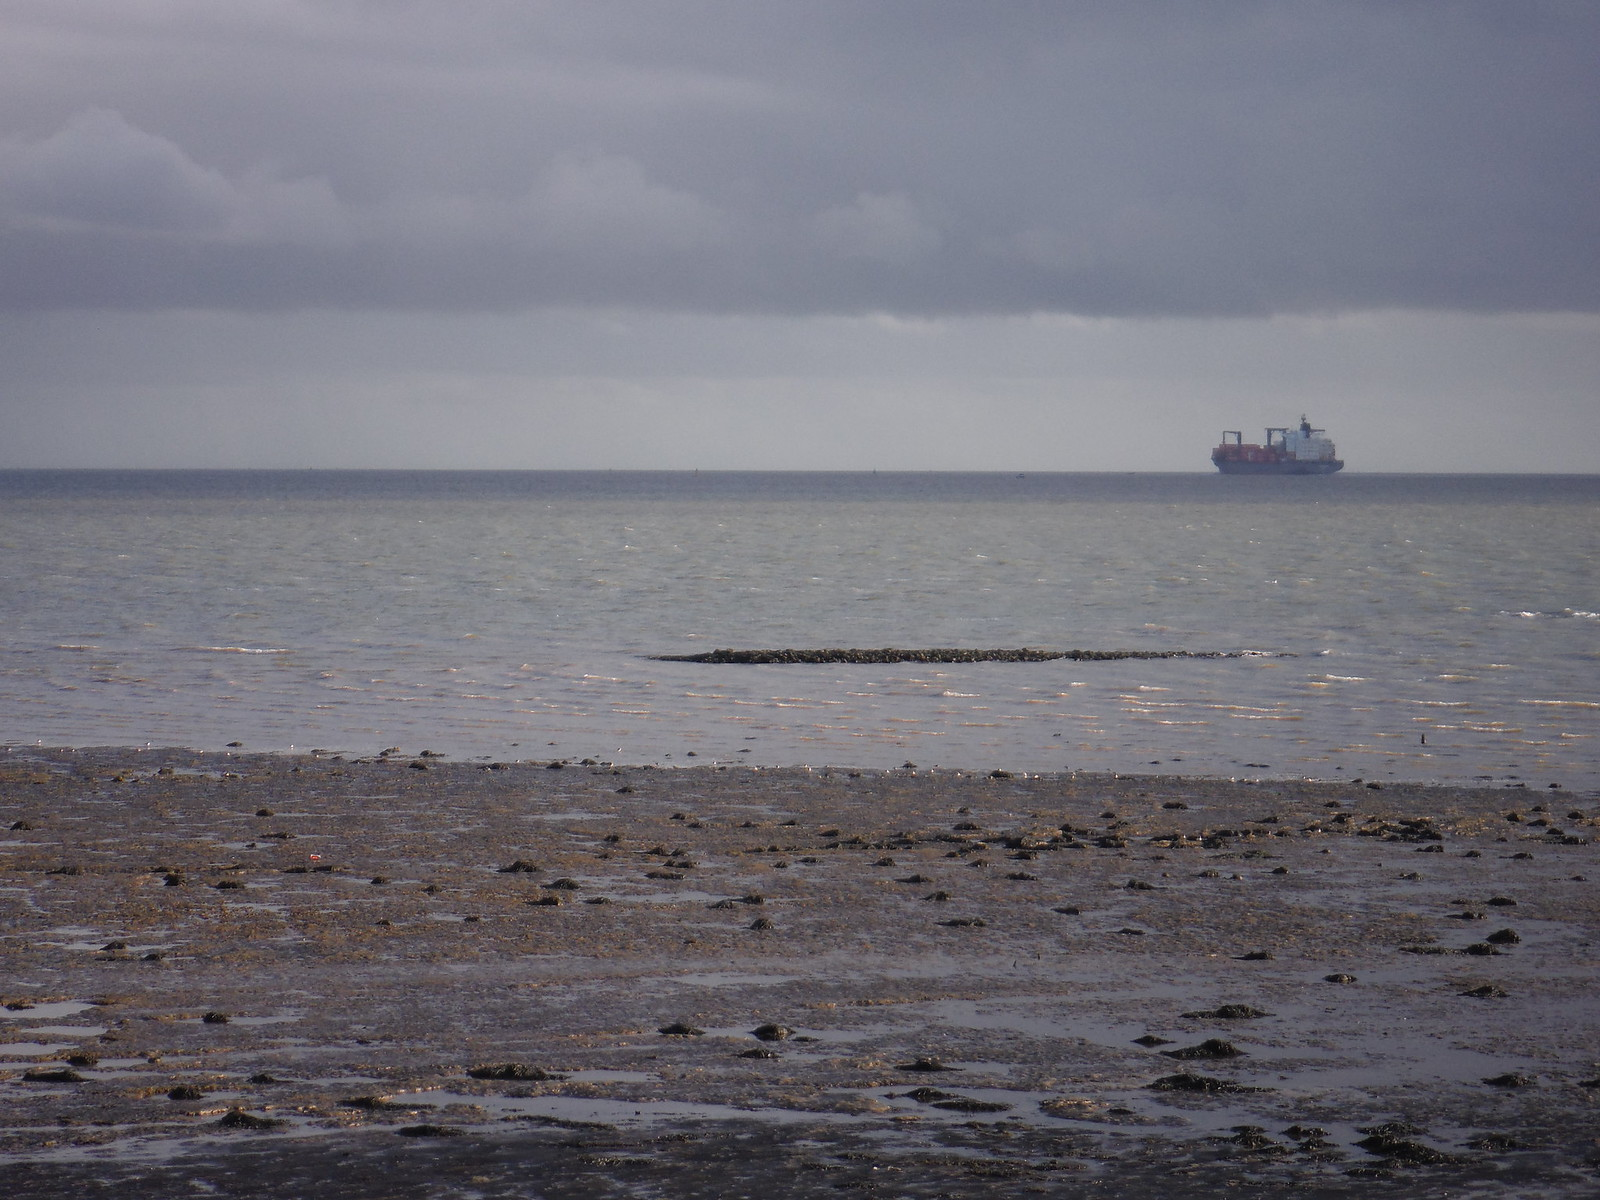 Ship in Thames Estuary, from Canvey Point SWC Walk 258 Benfleet Circular (via Canvey Island)